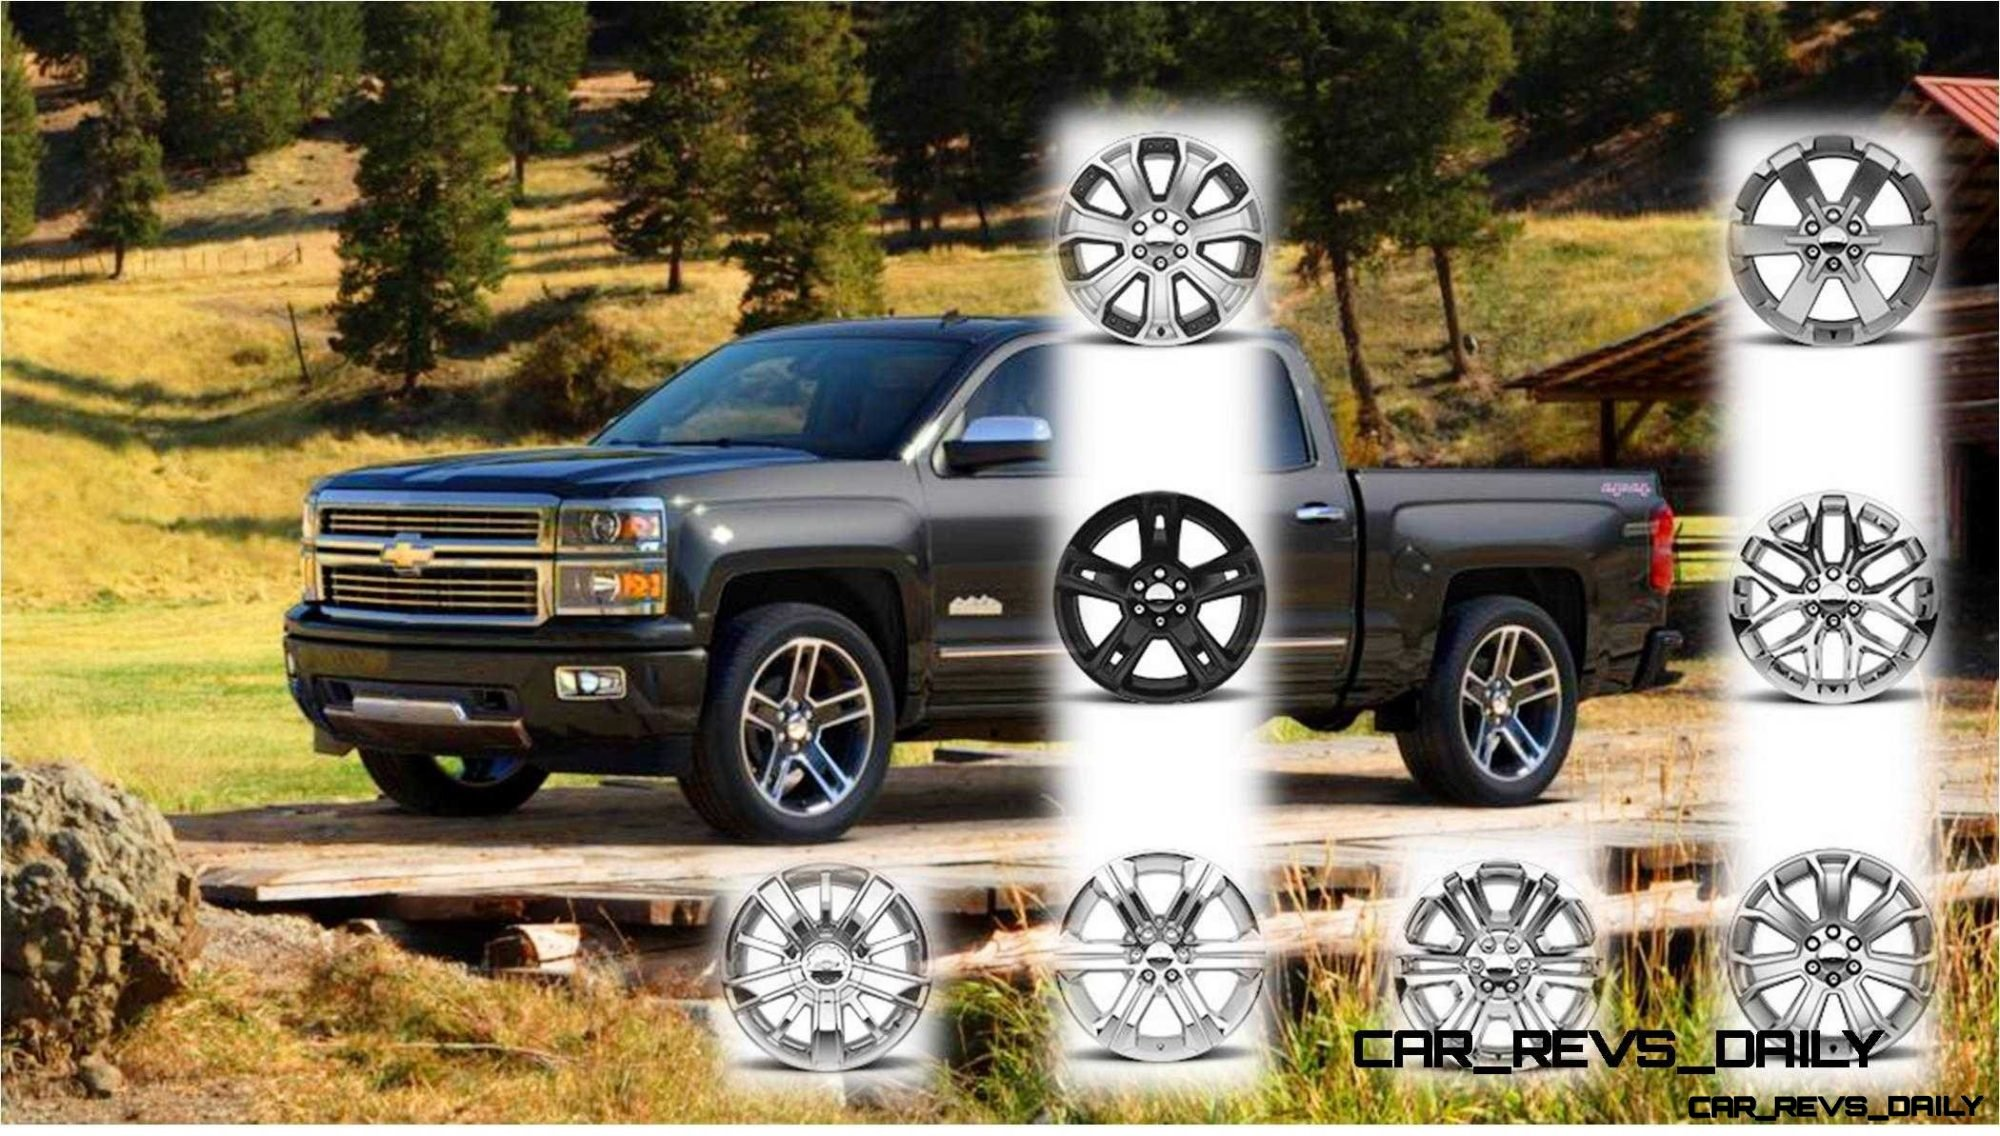 Silverado high country visualizer with all new colors and 22 inch wheels galore